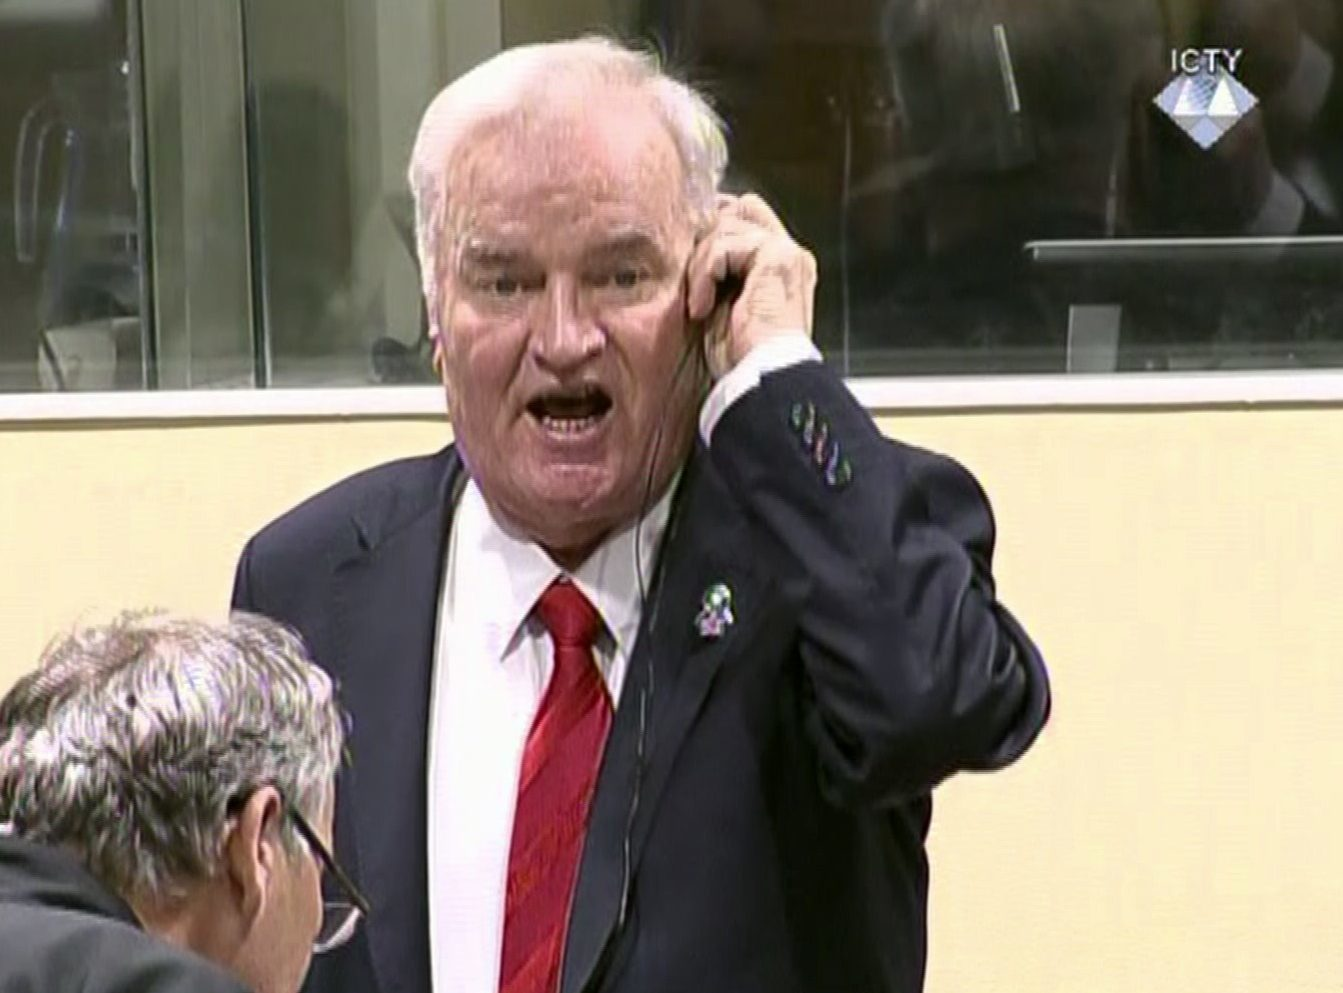 Bosnian Serb military chief Ratko Mladic during an angry outburst in the Yugoslav War Crimes Tribunal in The Hague, Netherlands, on Wednesday